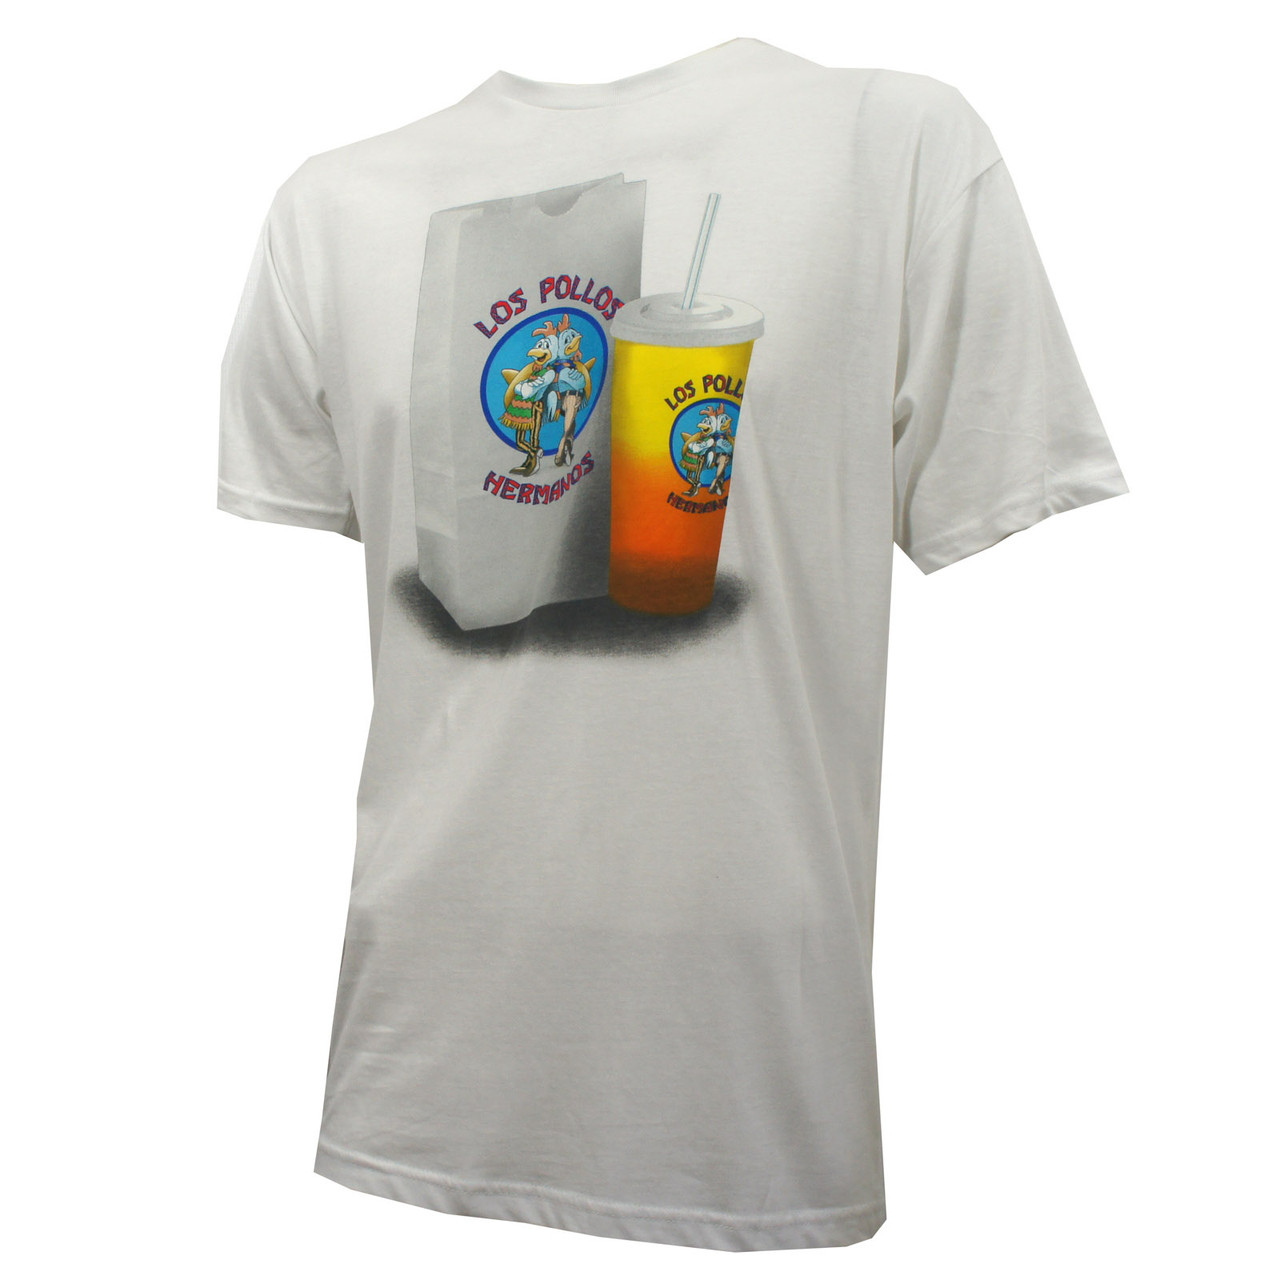 http://d3d71ba2asa5oz.cloudfront.net/12013655/images/bs5m0011-ol%20breaking%20bad%20pollos%20hermanos%20sublimated%20t%20shirt%20(1).jpg